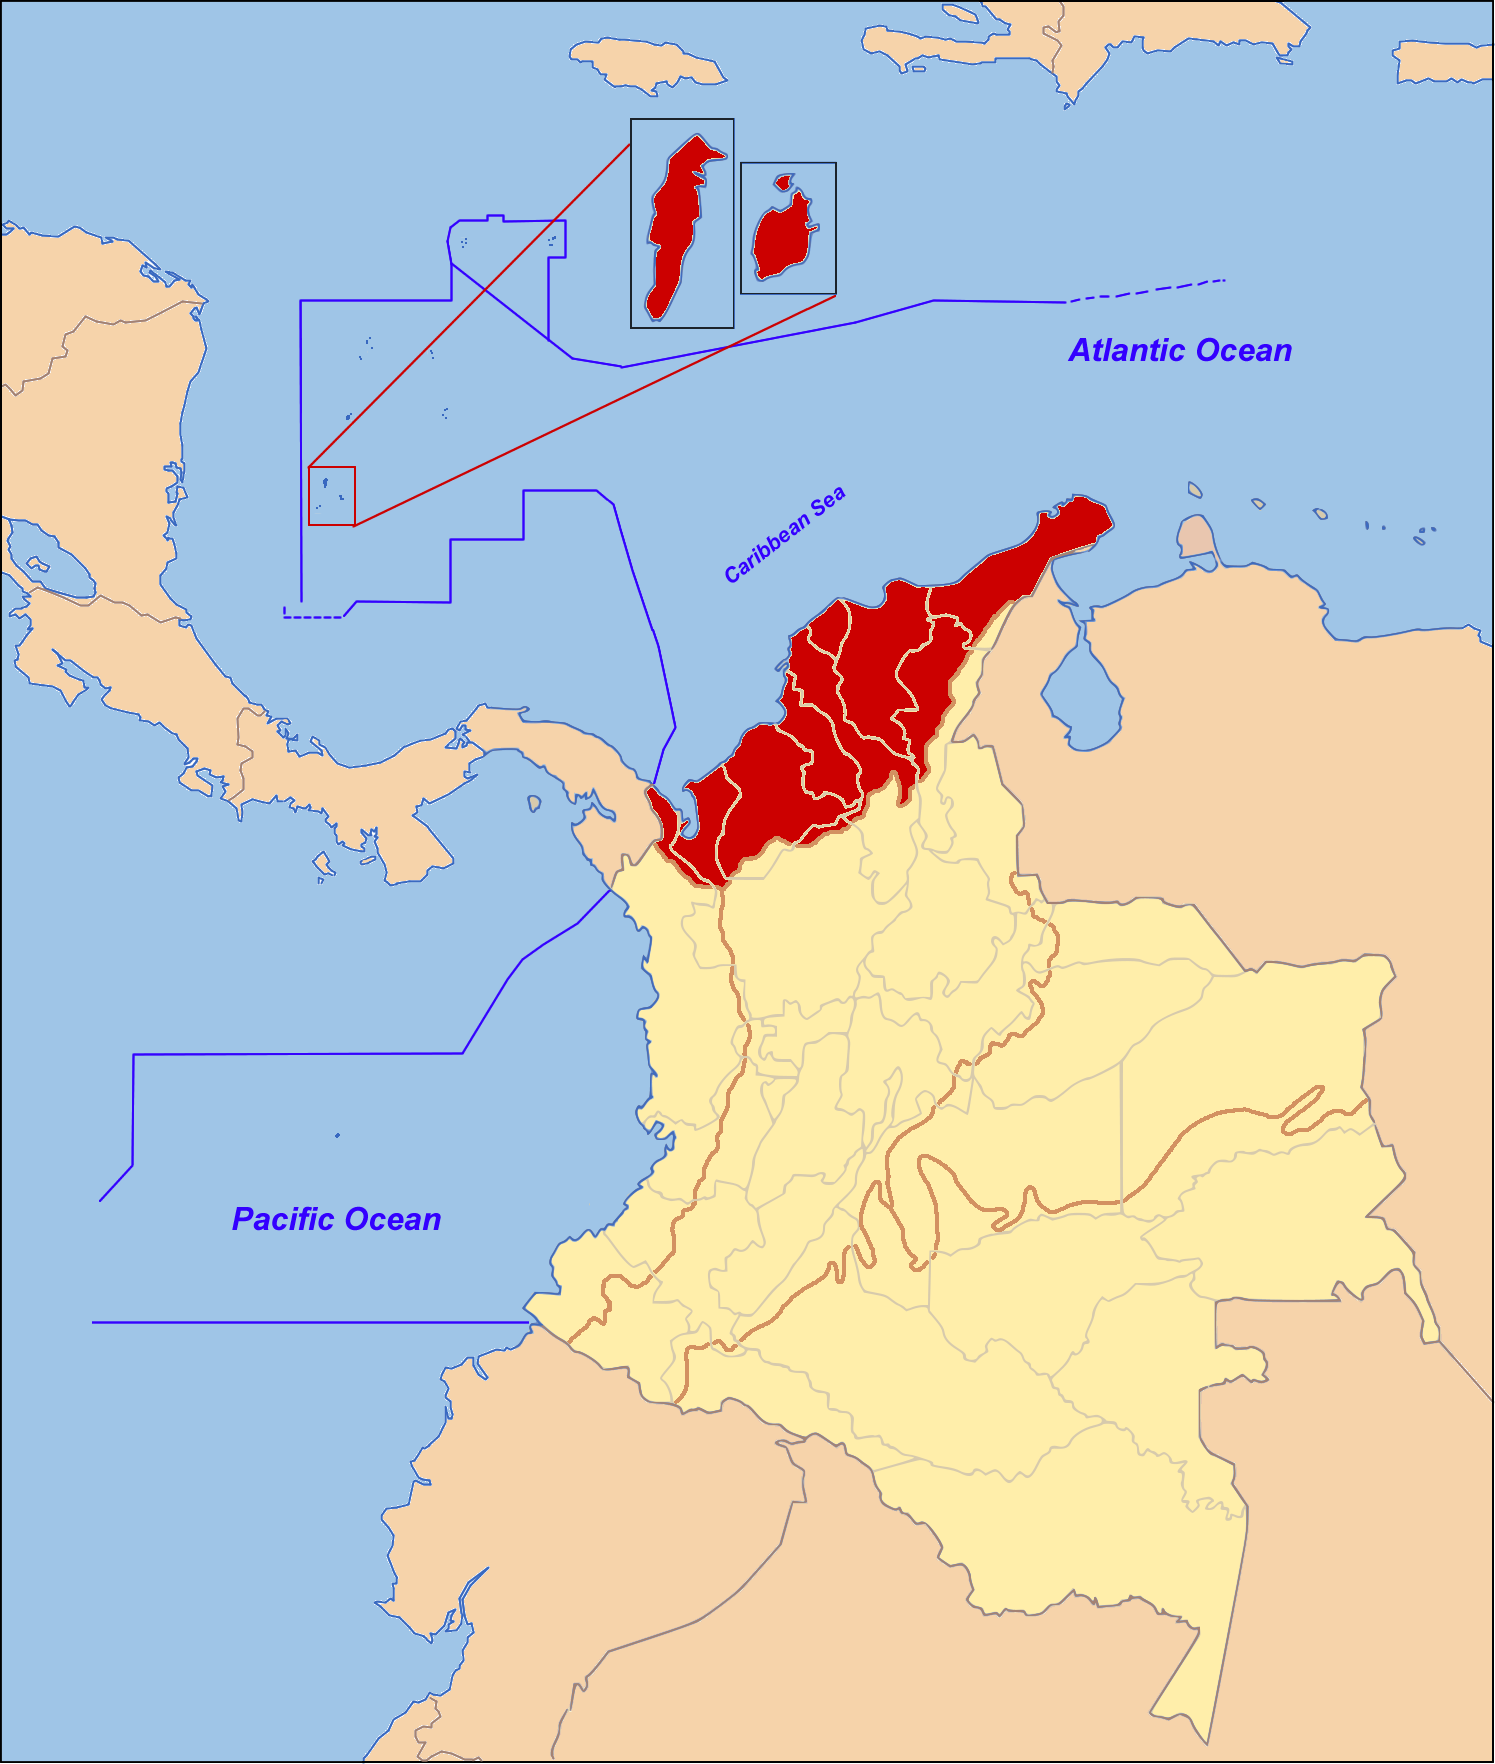 Caribbean region of Colombia - Wikipedia on brazil caribbean map, florida caribbean map, cartagena caribbean map, st. lucia island caribbean map, cuba caribbean map, bermuda caribbean map, colombia travel guide, aruba caribbean map, montserrat caribbean map, americas caribbean map, cayman islands caribbean map, martinique caribbean map, guadalupe caribbean map, saint martin caribbean map, caracas caribbean map, louisiana caribbean map, mexico caribbean map, el salvador caribbean map, panama caribbean map, jamaica caribbean map,